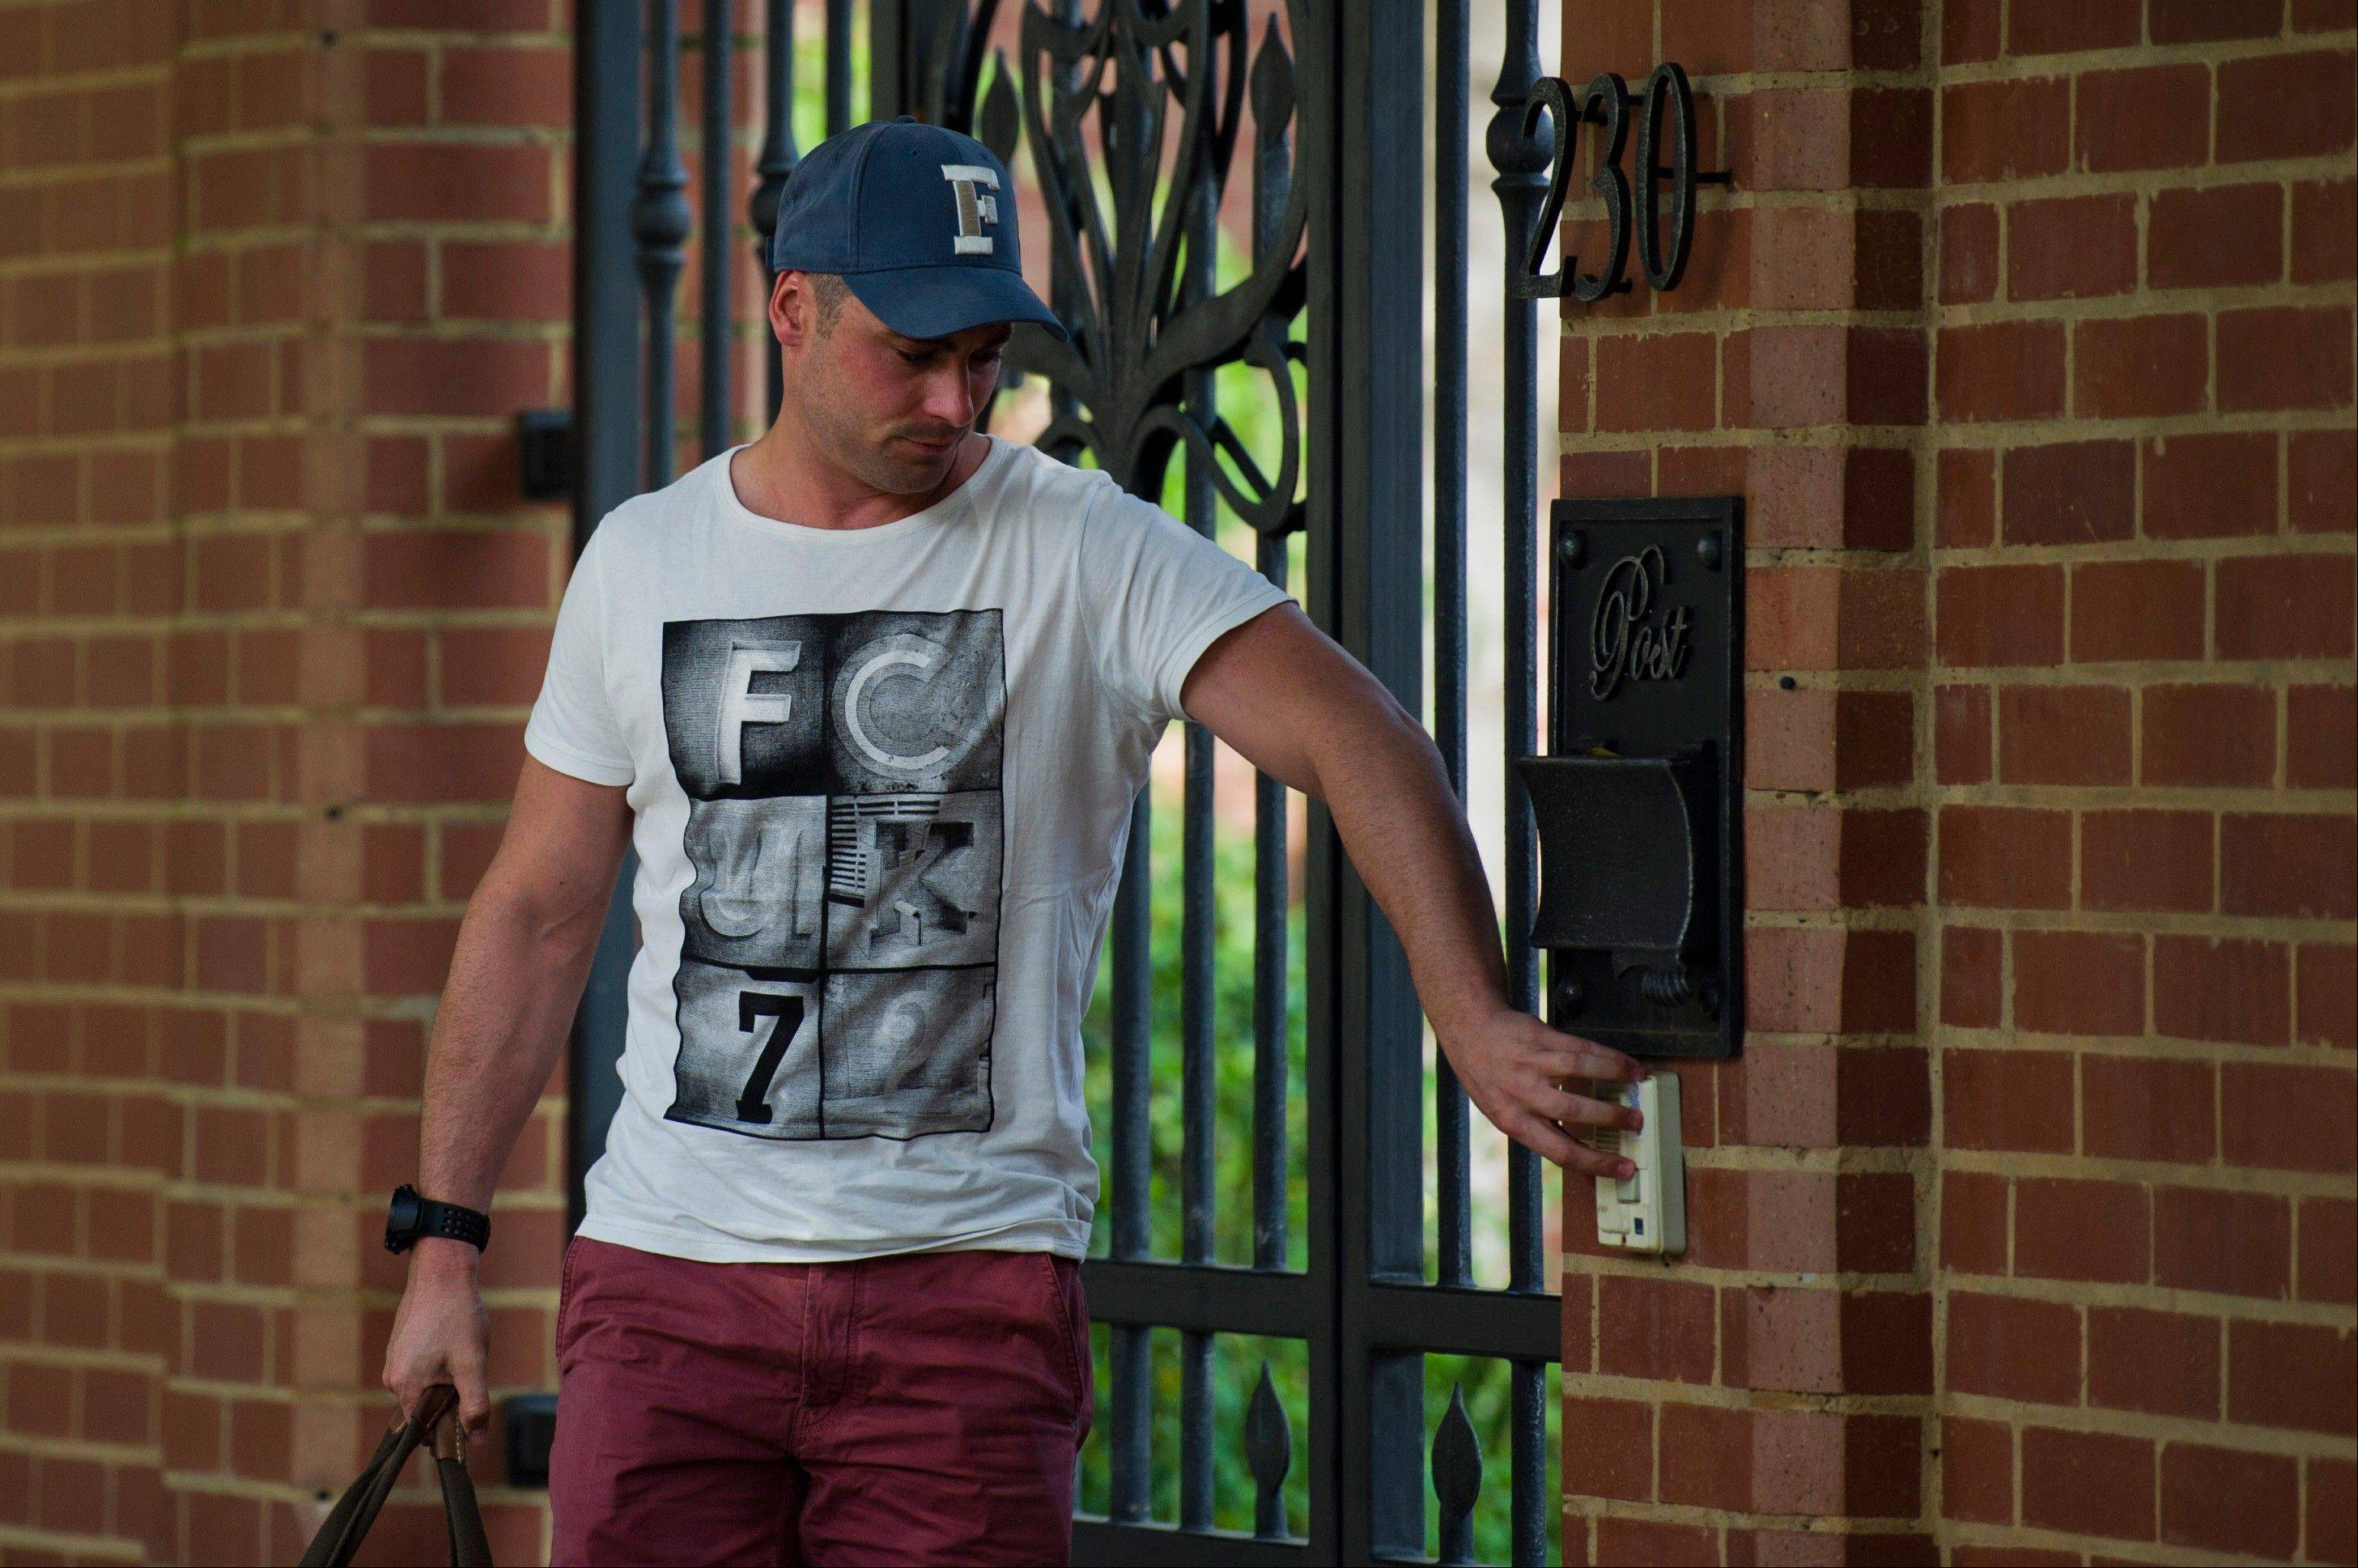 Carl Pistorius, brother of Olympian athlete, Oscar Pistorius, arrives home Sunday, where his brother has been staying in Pretoria, South Africa, since being granted bail Friday for the Valentine�s Day shooting death of his girlfriend.